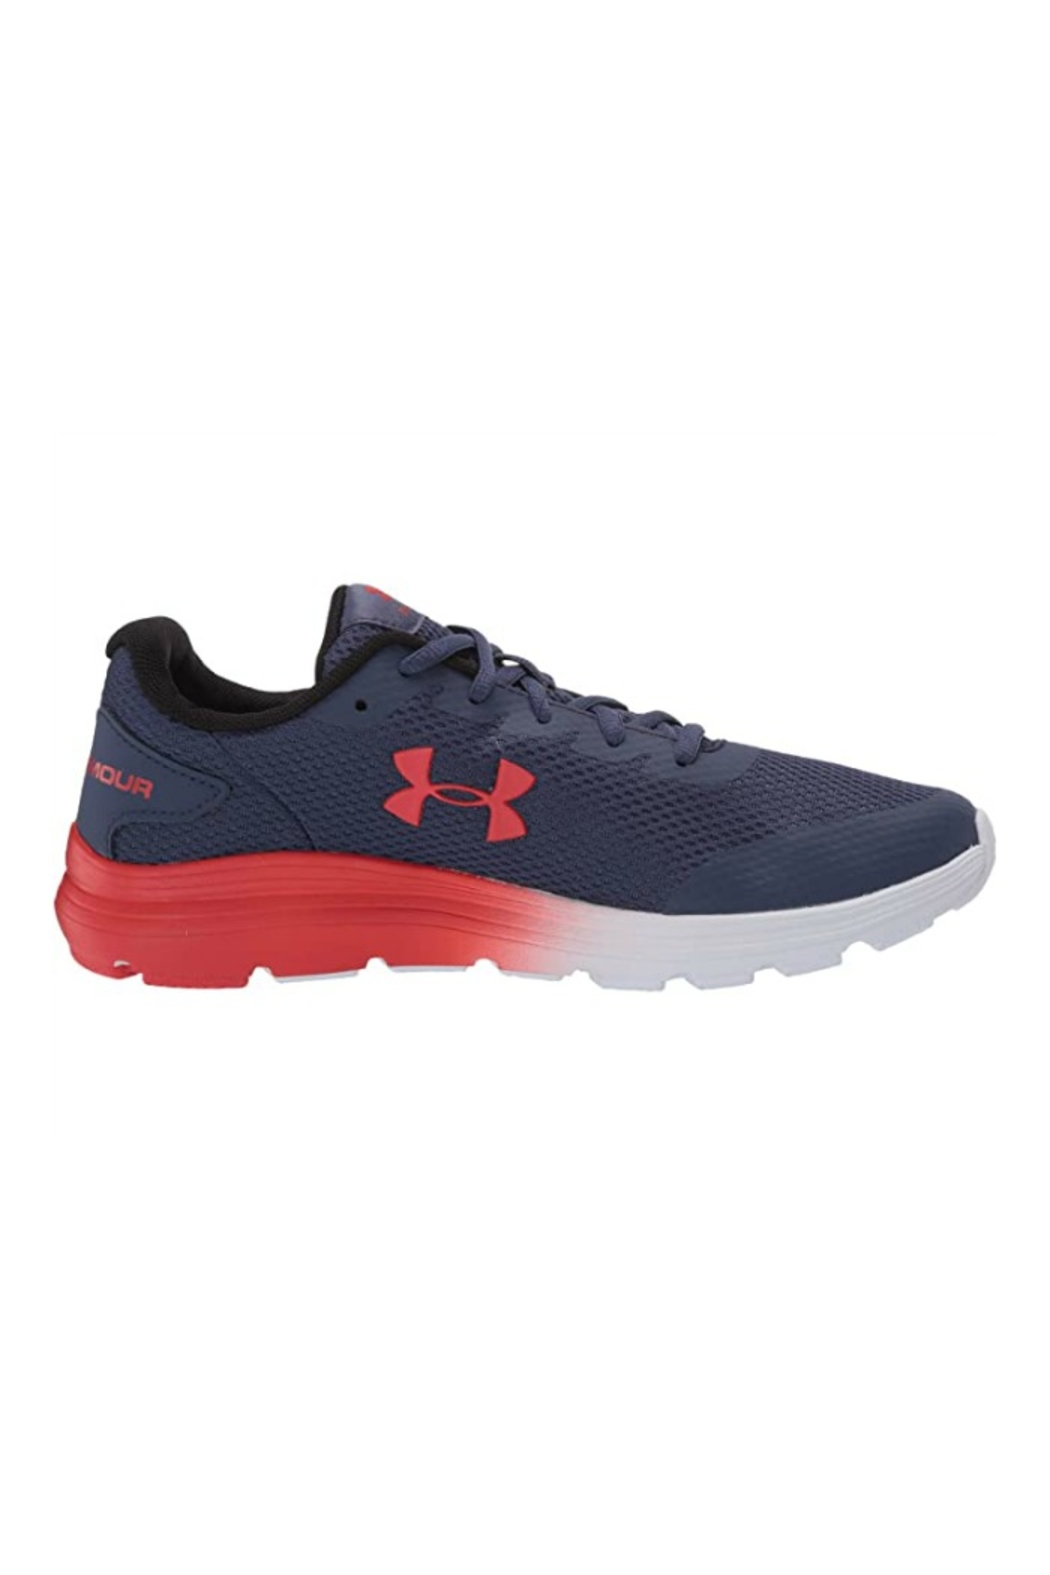 Under Armour Boys GS Surge 2 - Main Image